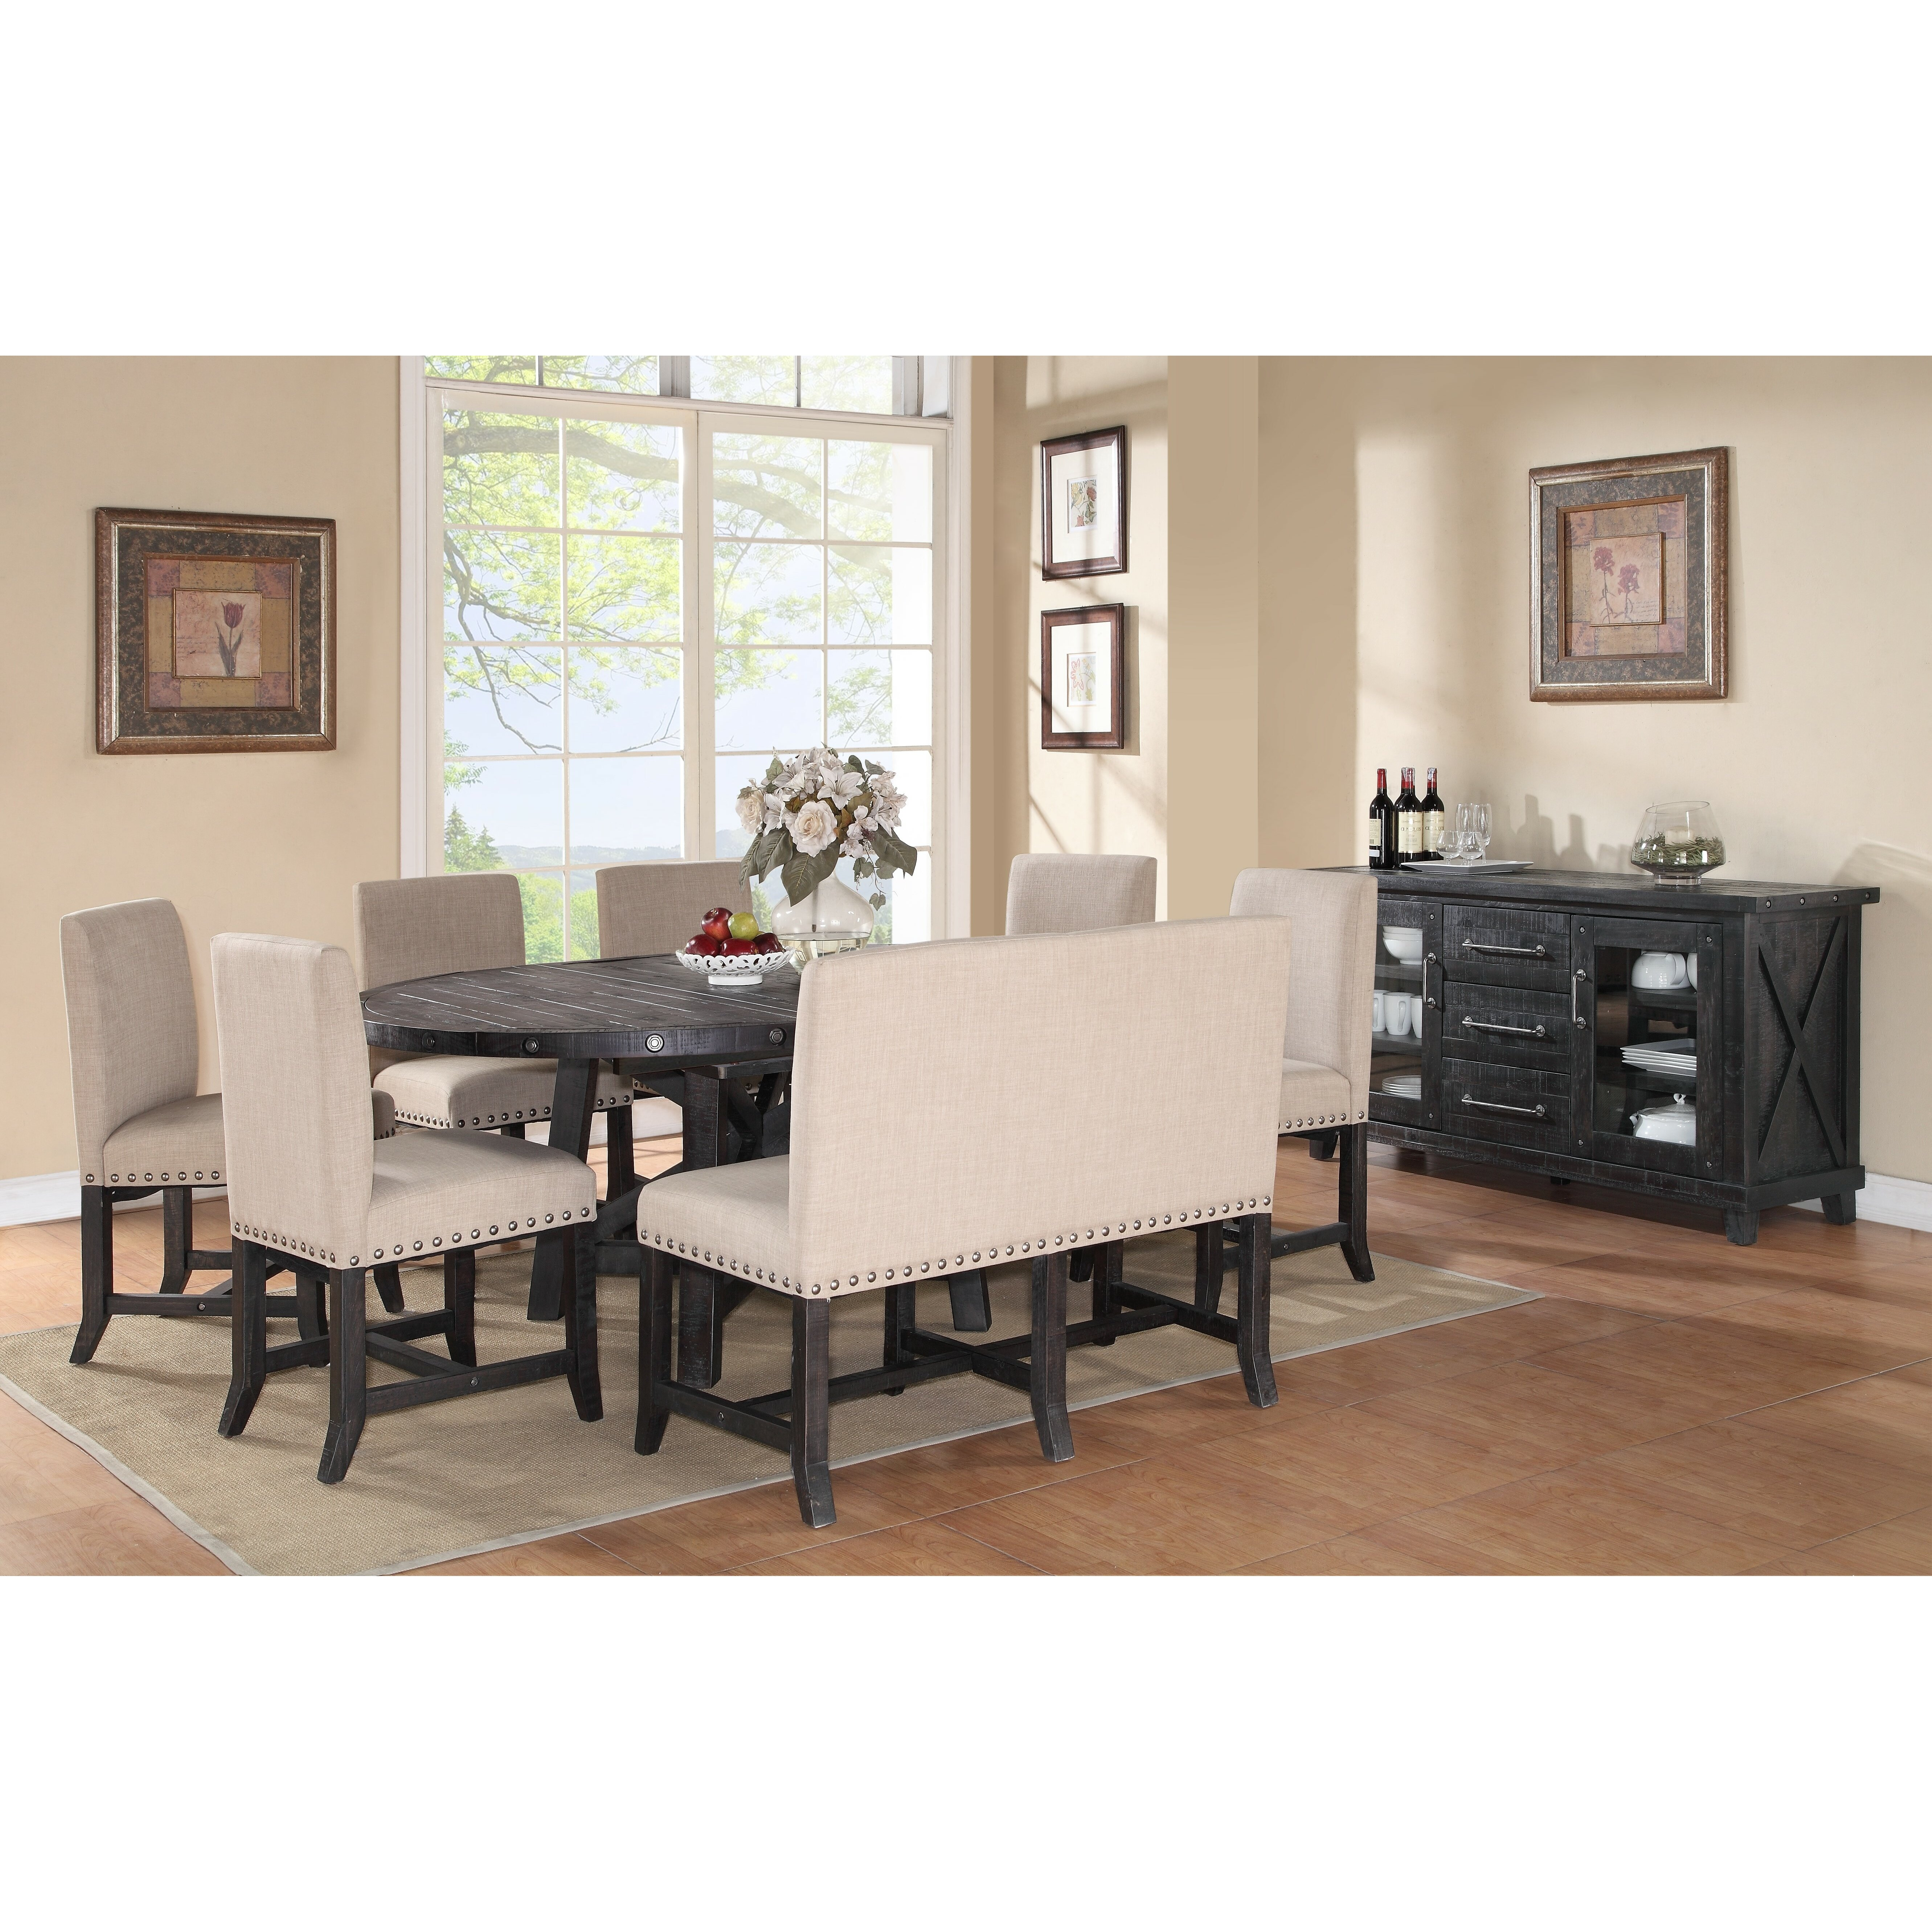 Trent austin design del rio 8 piece dining set reviews - Dining room tables austin ...